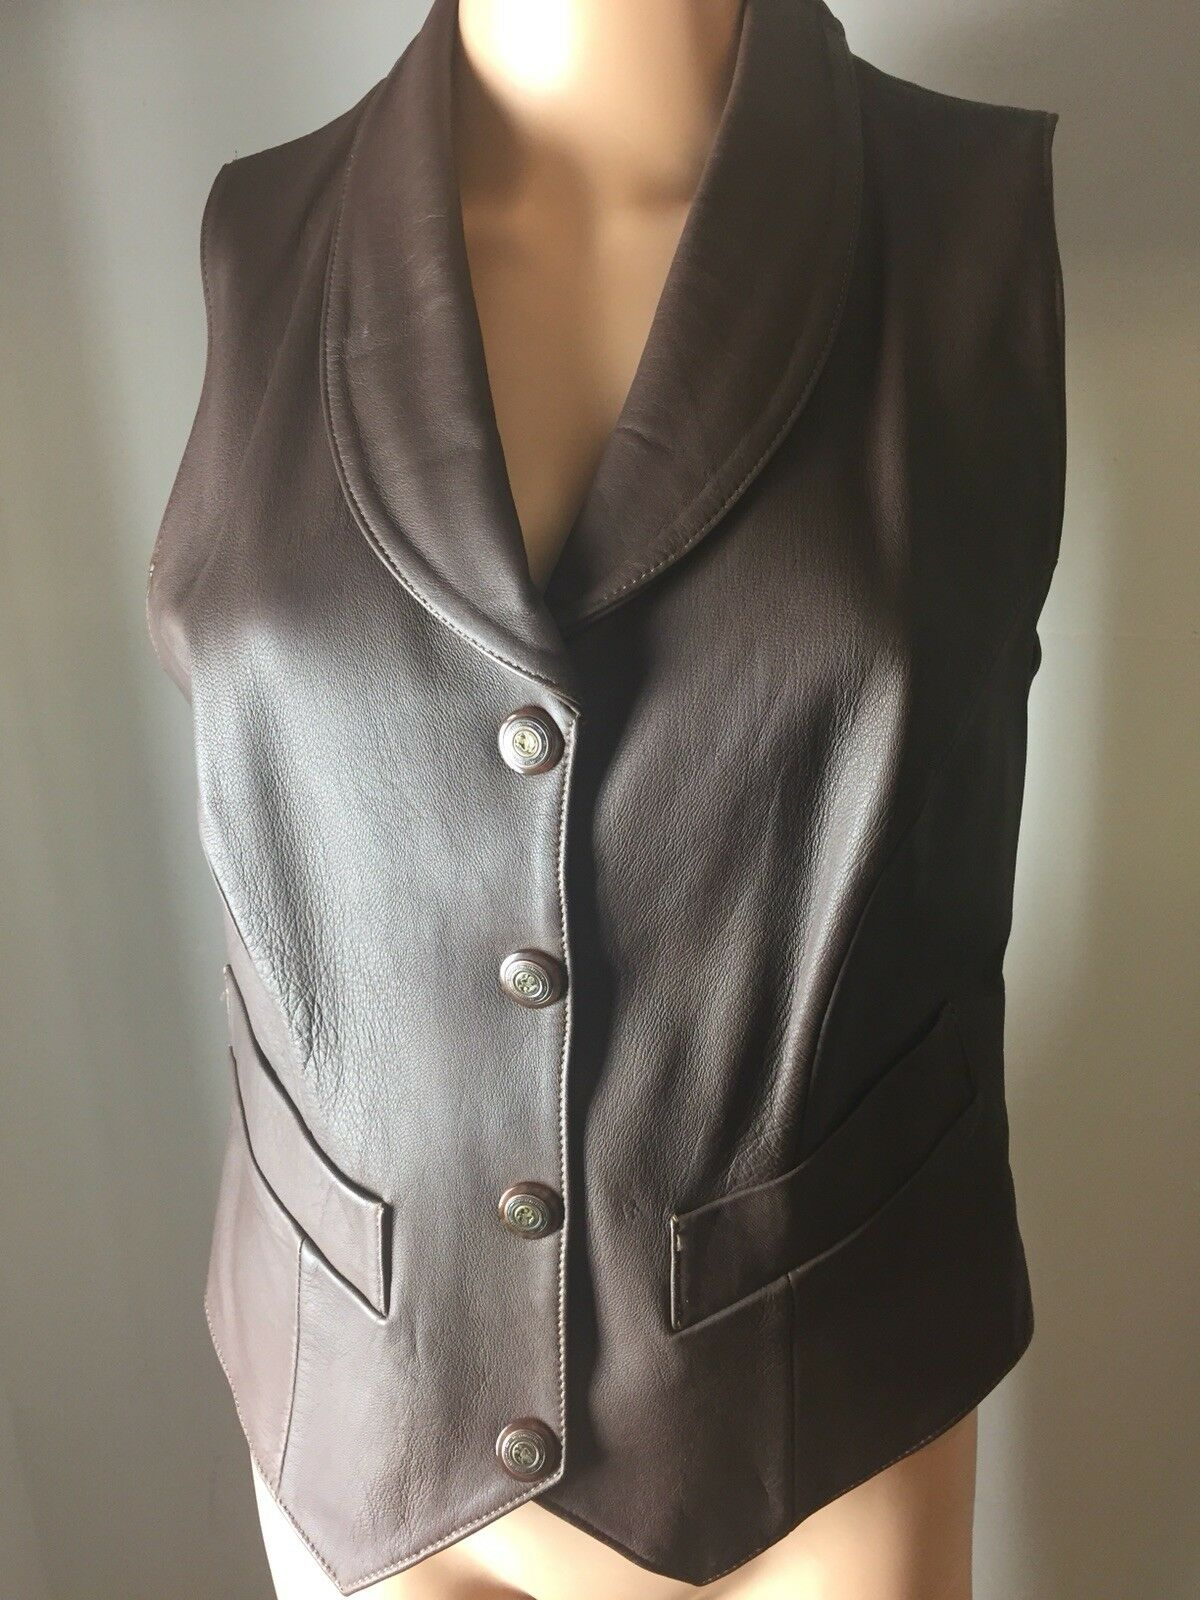 Vintage Alex Piel Genuina - Genuine Leather Vest Brown Sleeveless Lined 34